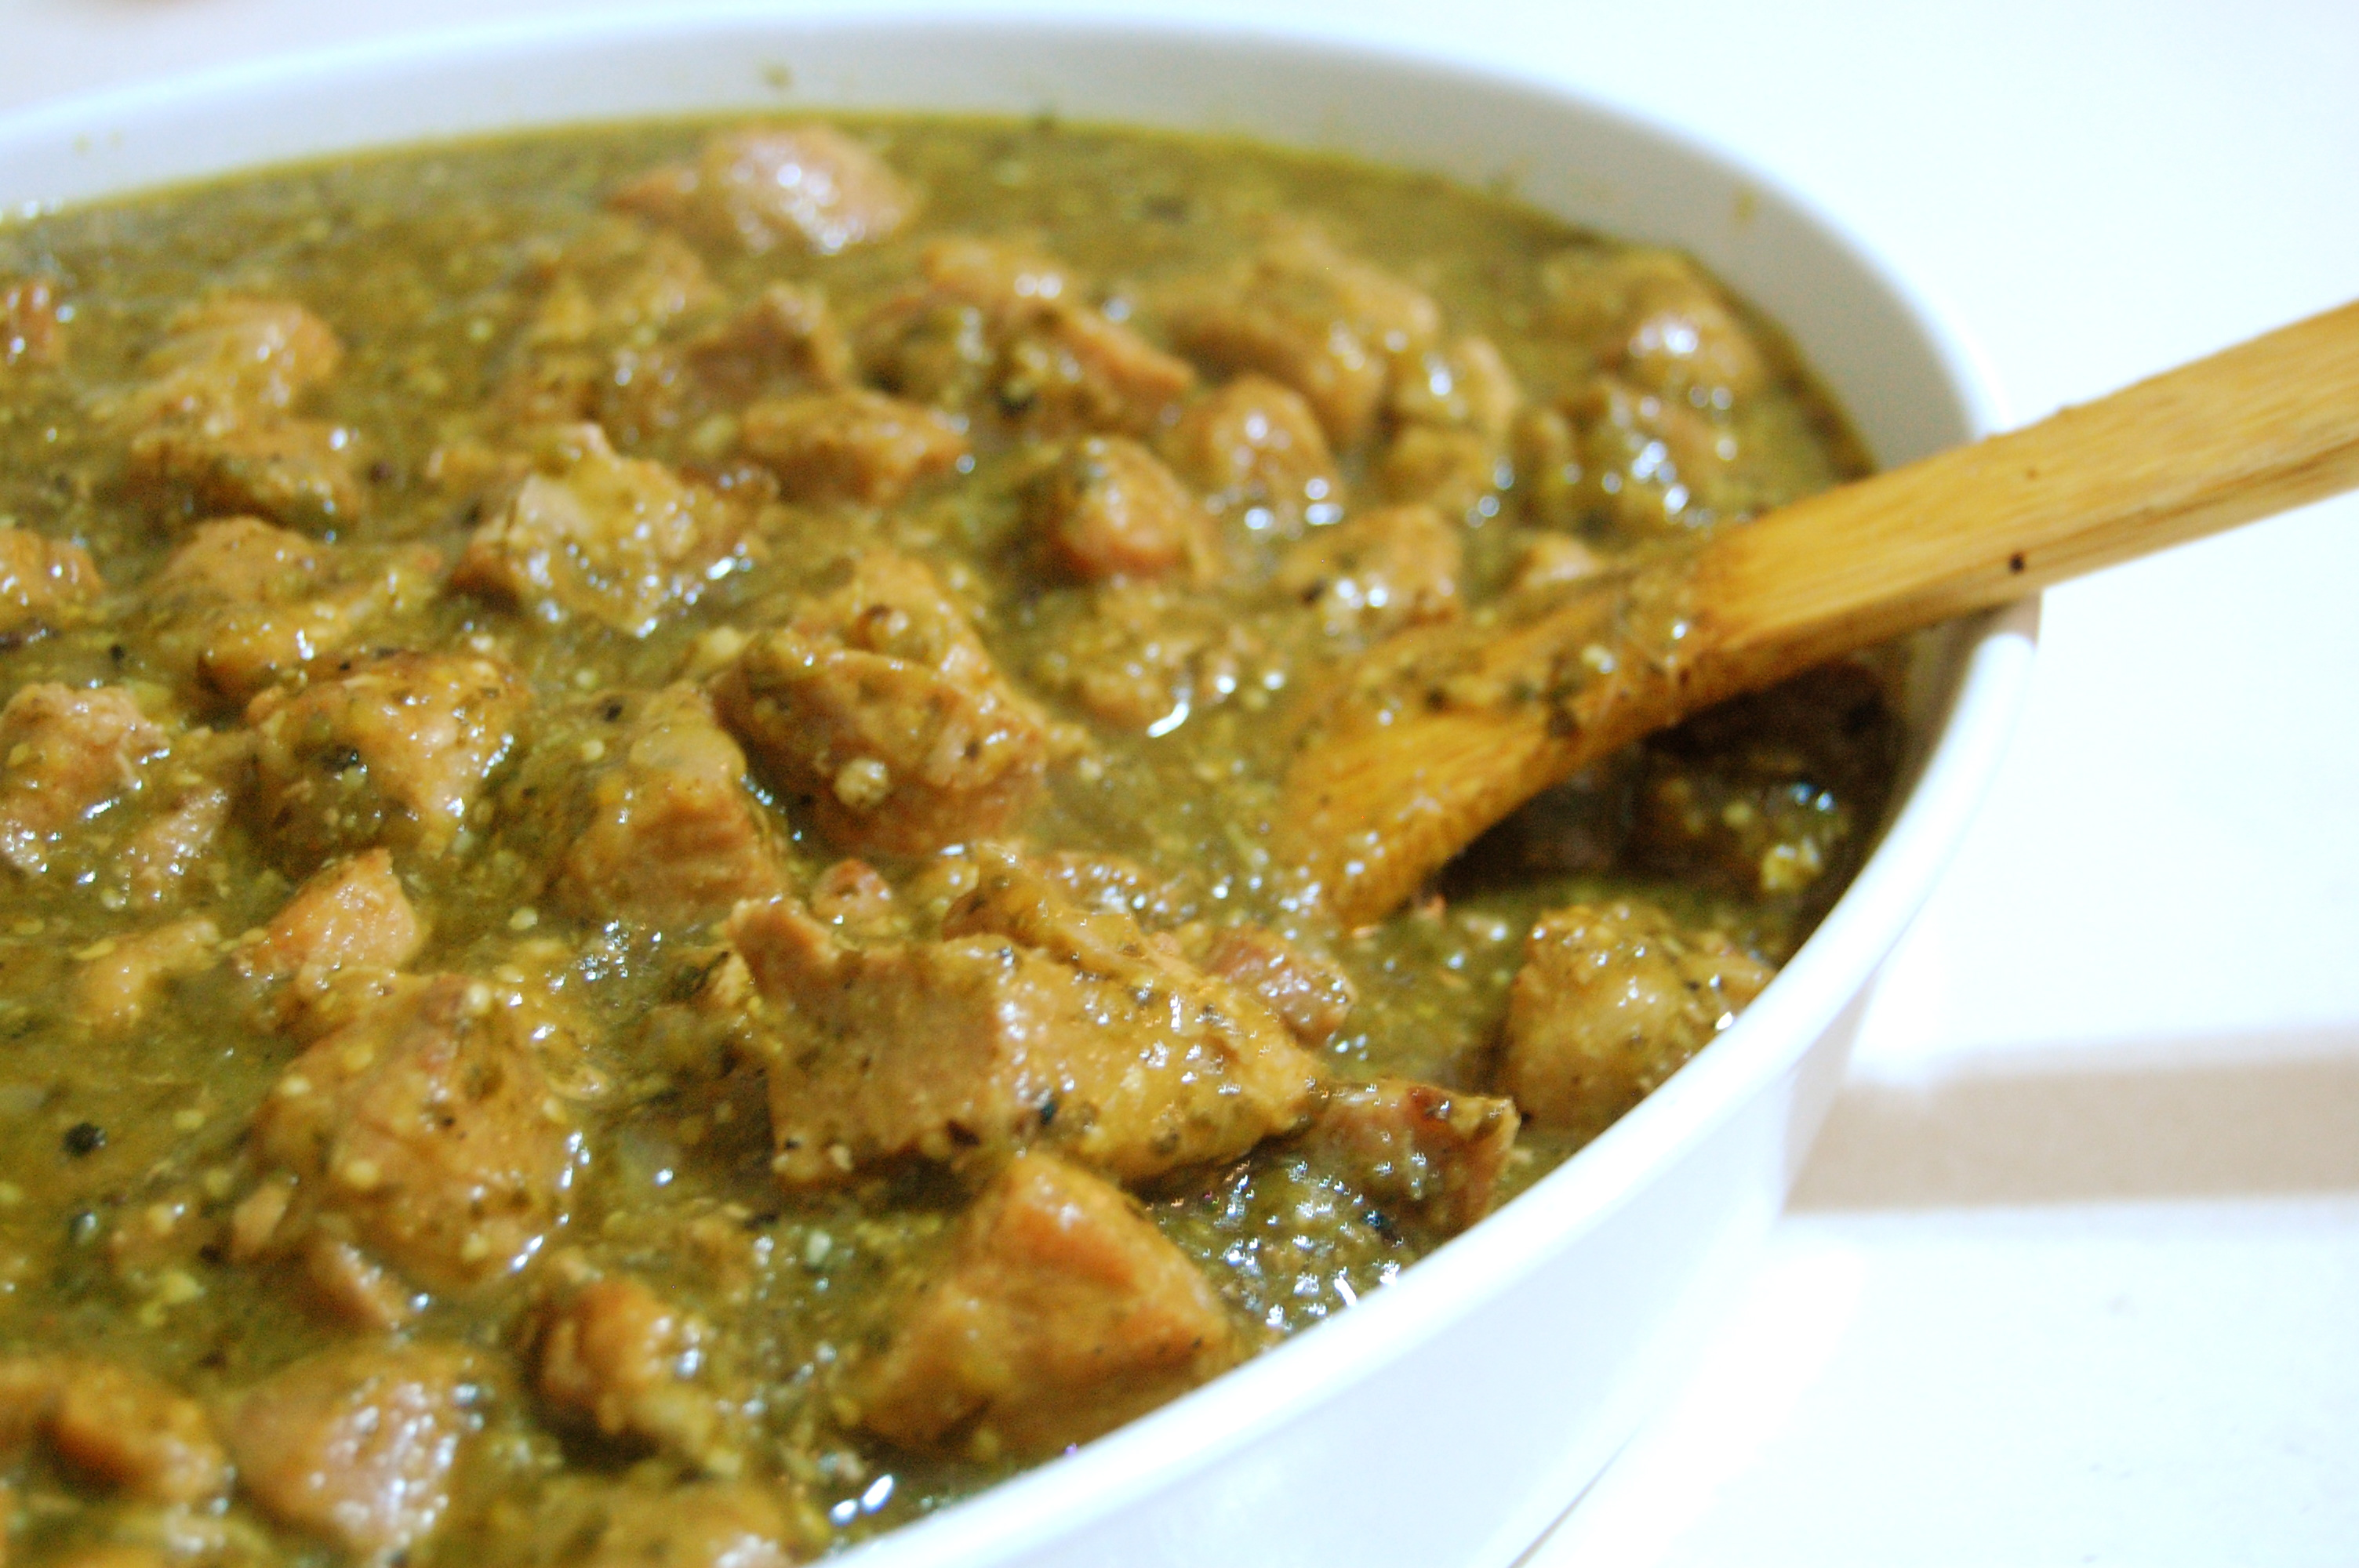 Chili Verde! | I made that!